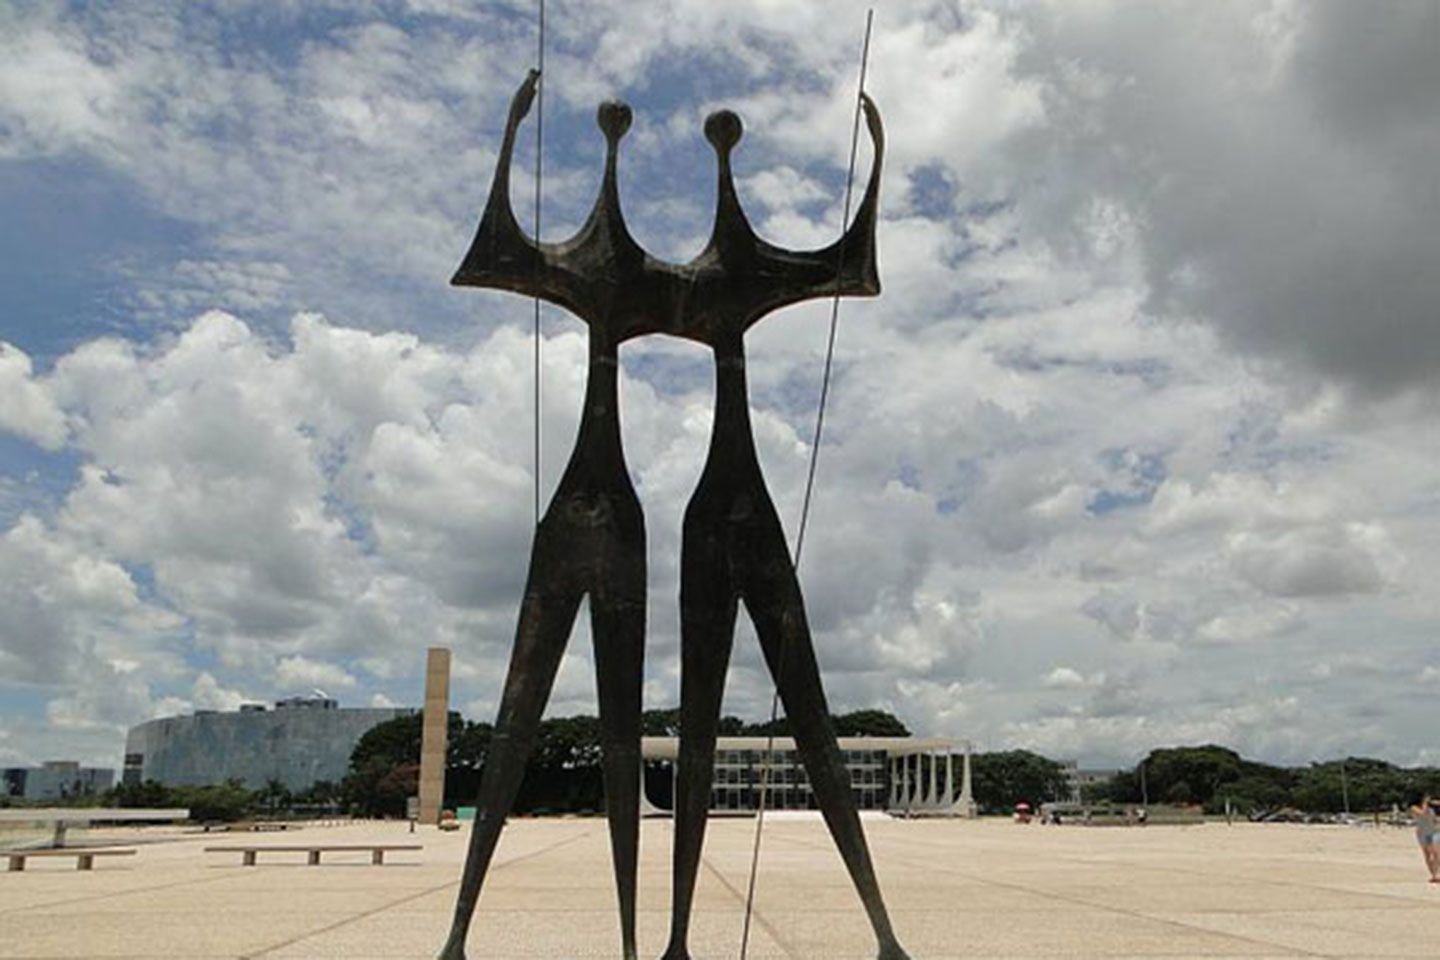 brasilia monumental axis